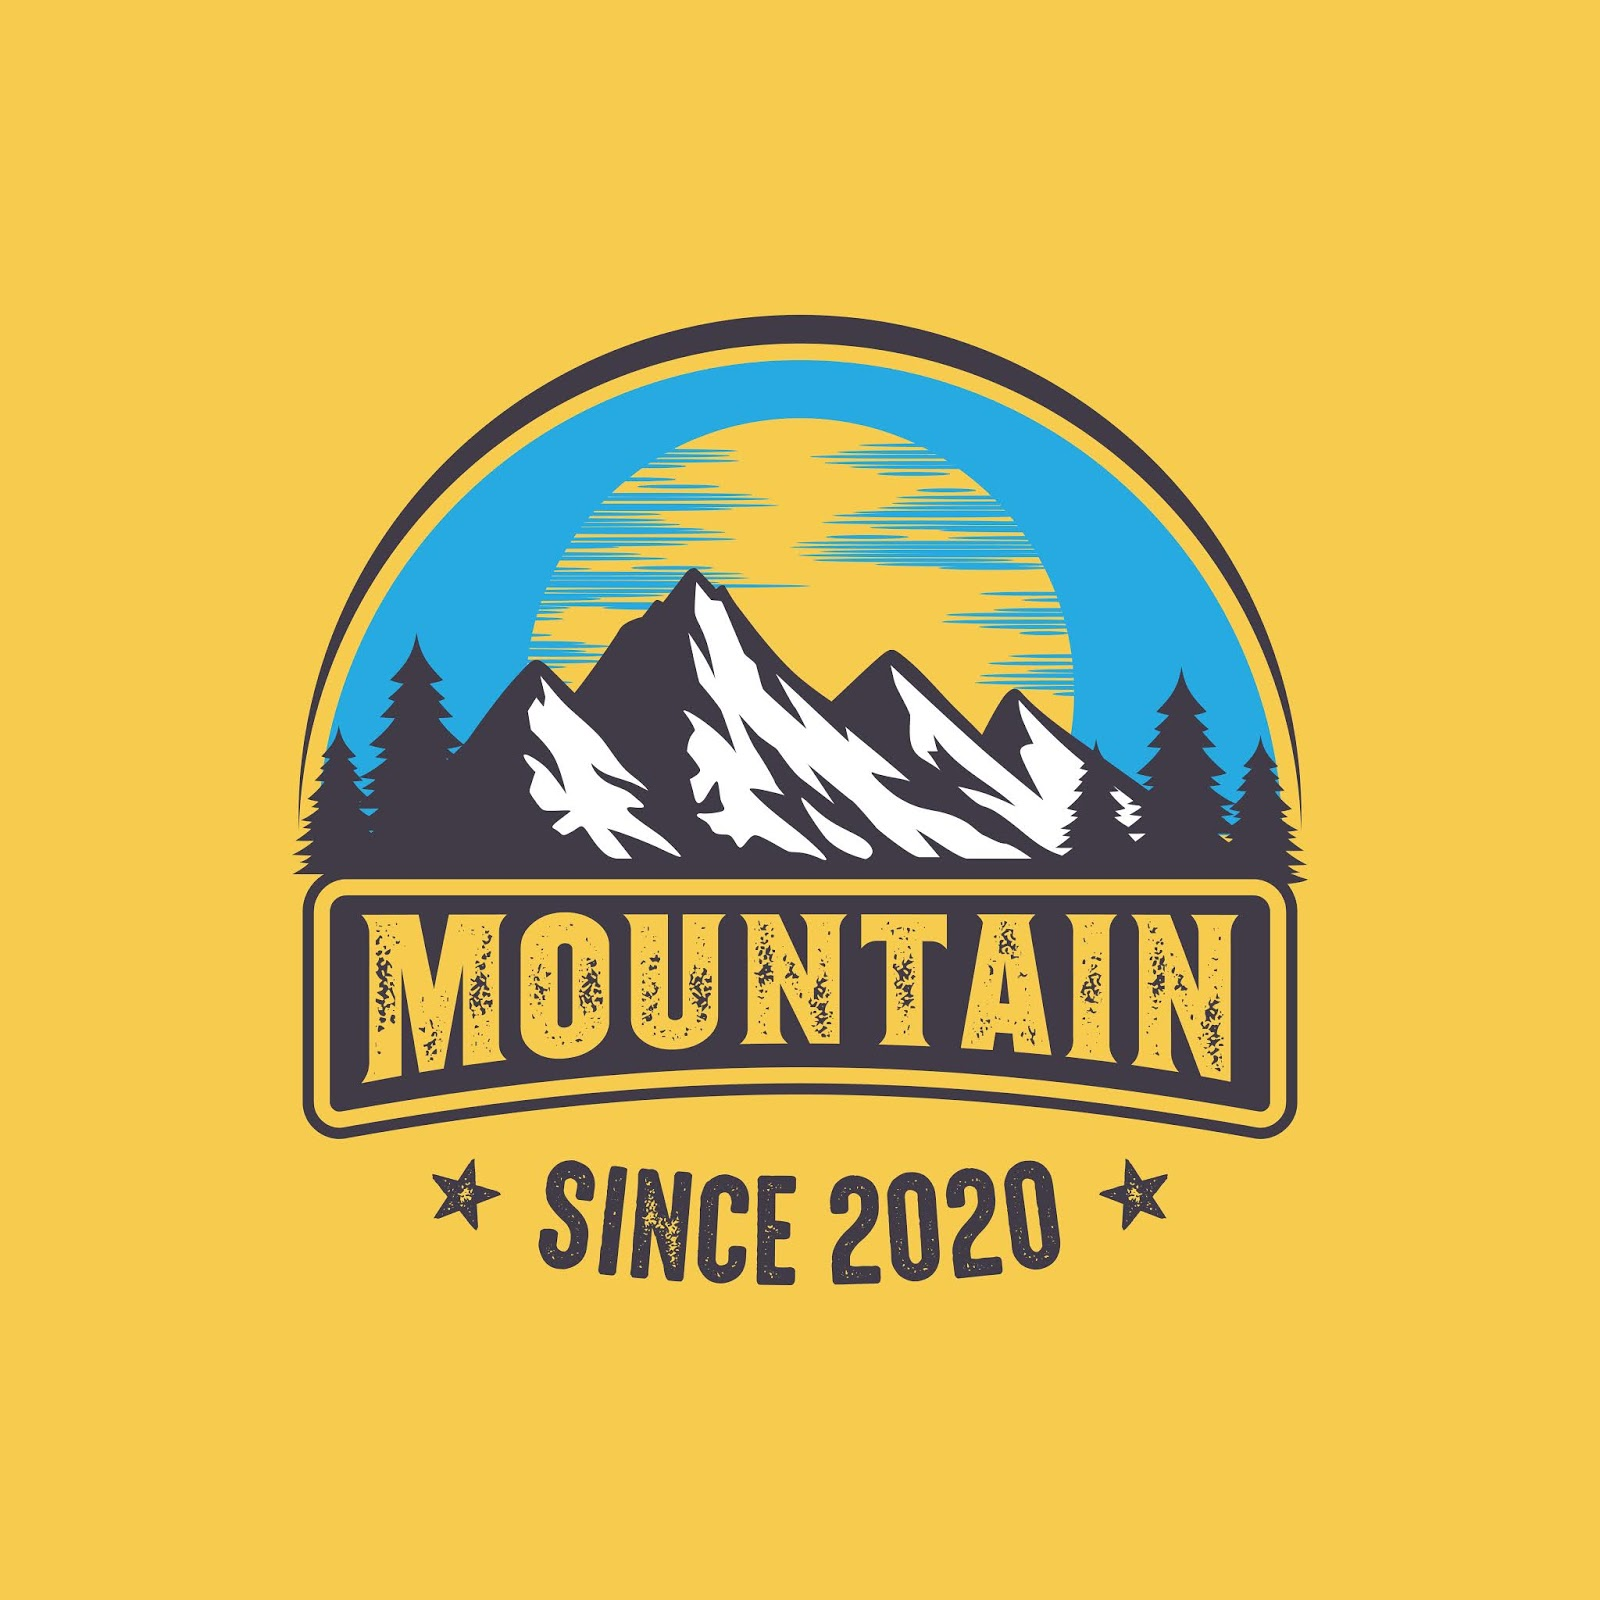 Mountain Logo Adventure Outdoor Logo Funny Free Download Vector CDR, AI, EPS and PNG Formats